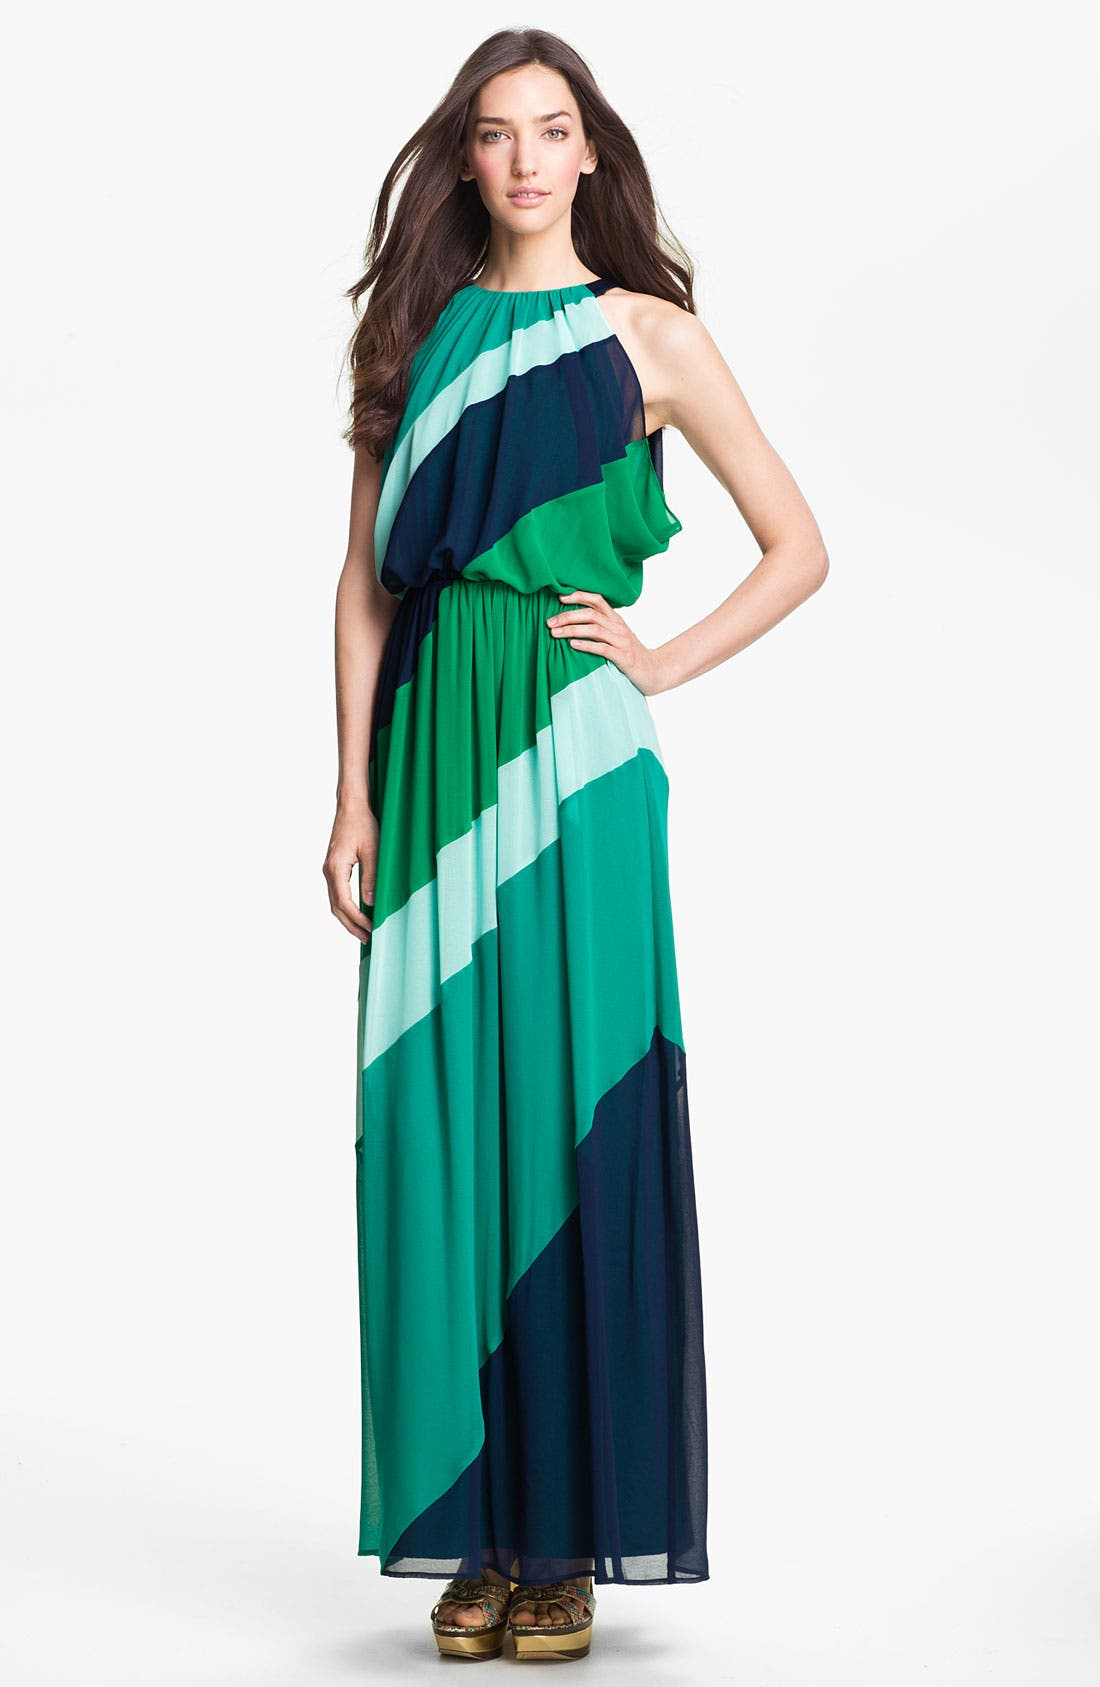 Main Image - Vince Camuto Diagonal Colorblock Chiffon Maxi Dress